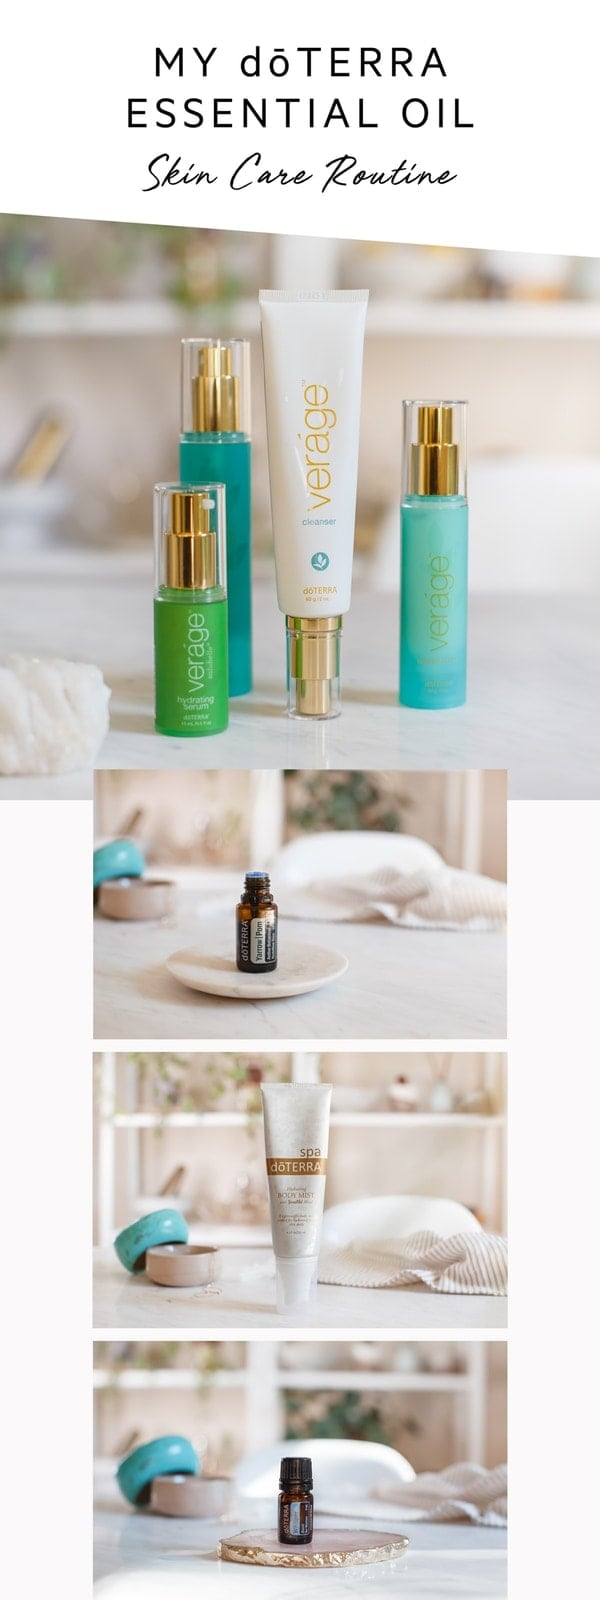 This is what my current daily essential oil skin care routine looks like, using some of doTERRA's most beautiful plant-based products and pure oils. #doterraskincare #lowtoxskincare #essentialoilsskin #essentialoilskincare #essentialoilantiaging #AscensionKitchen